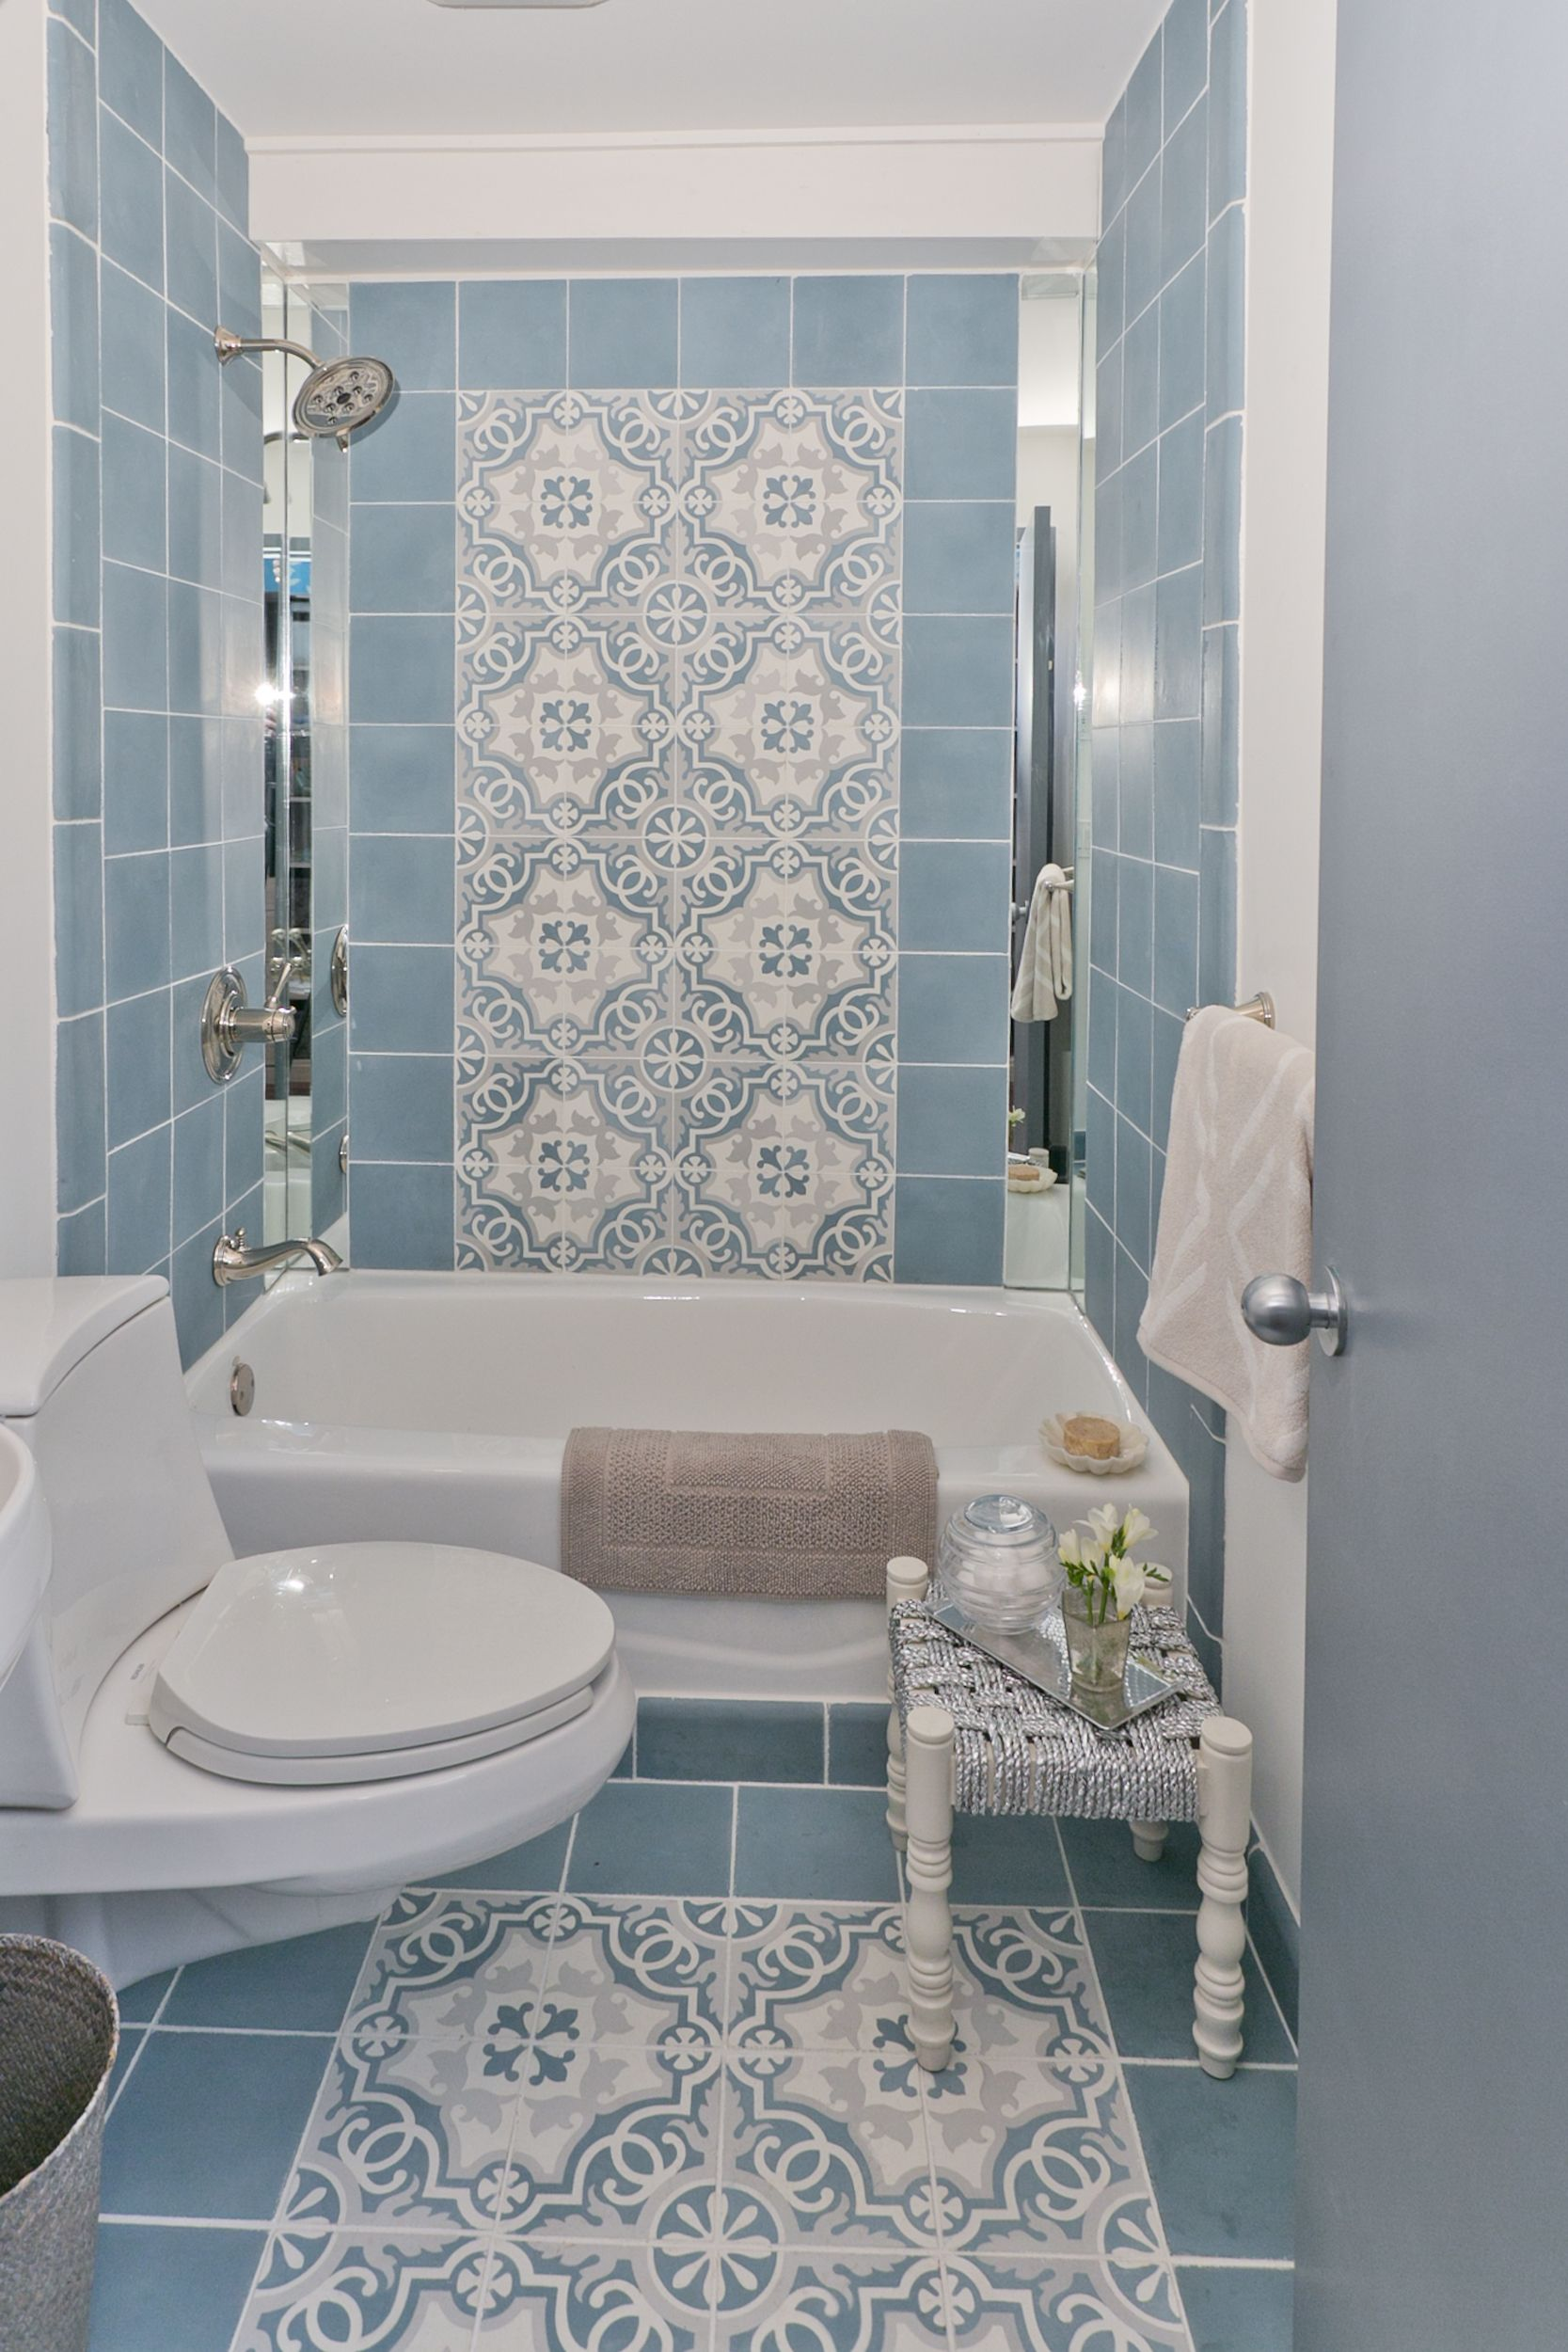 console hexagon for tile vintage subway no grey victoria bath img to how choose bathroom marble you will grout porcelain or a sink pick floor there be i must